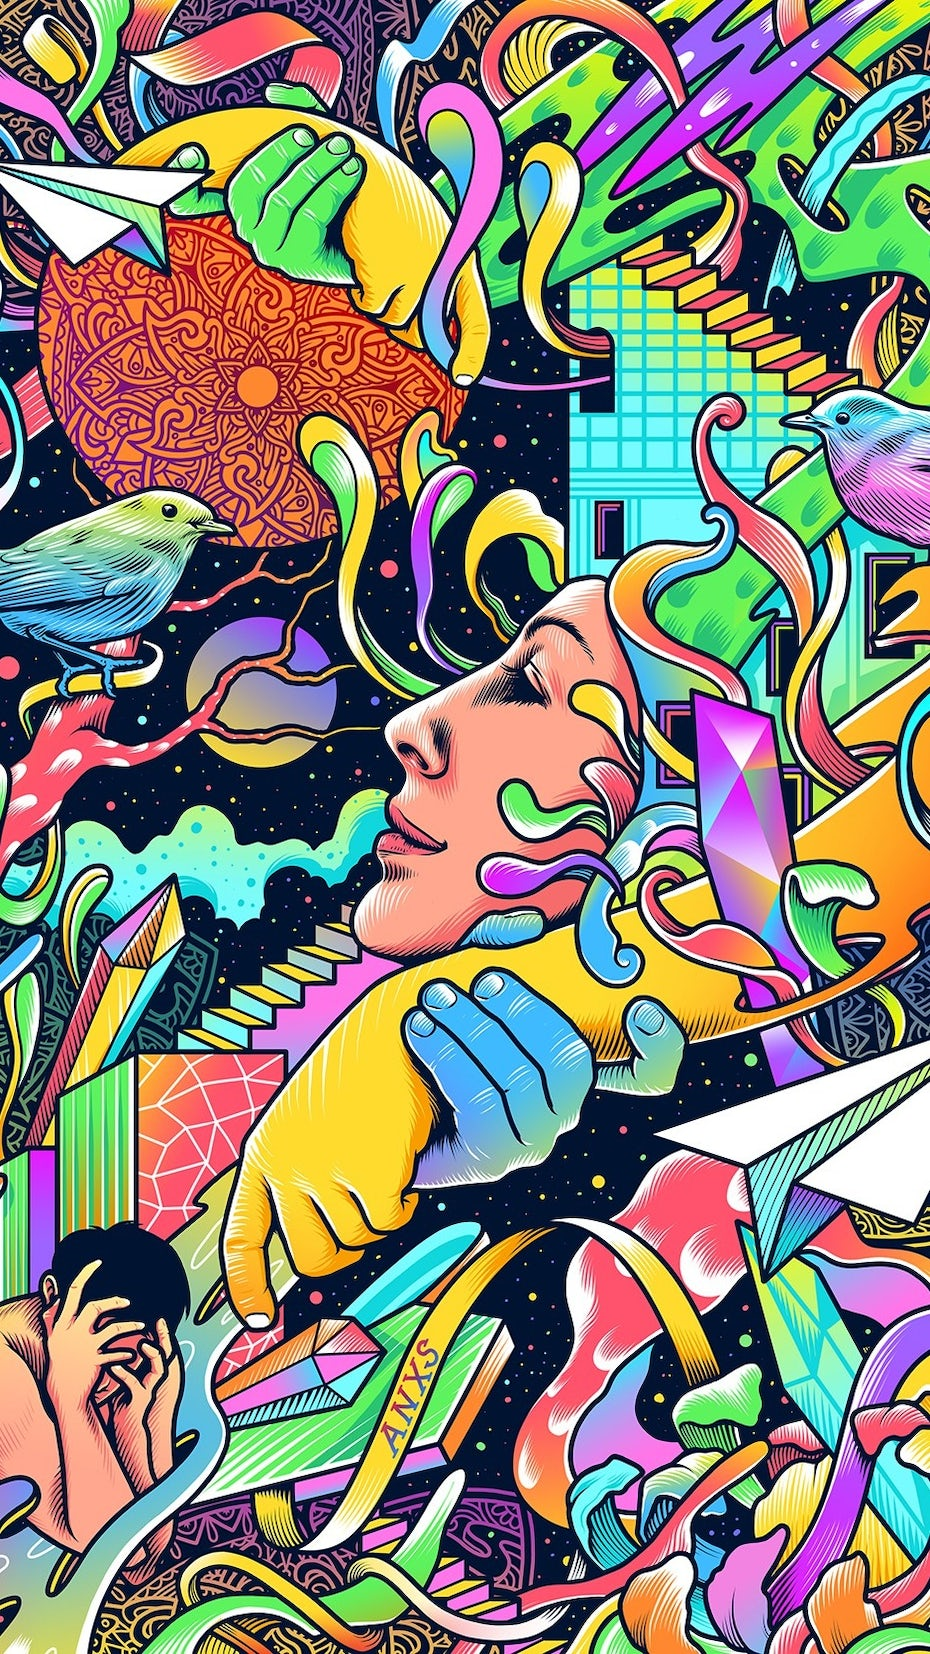 Colorful and abstract psychedelic poster illustration